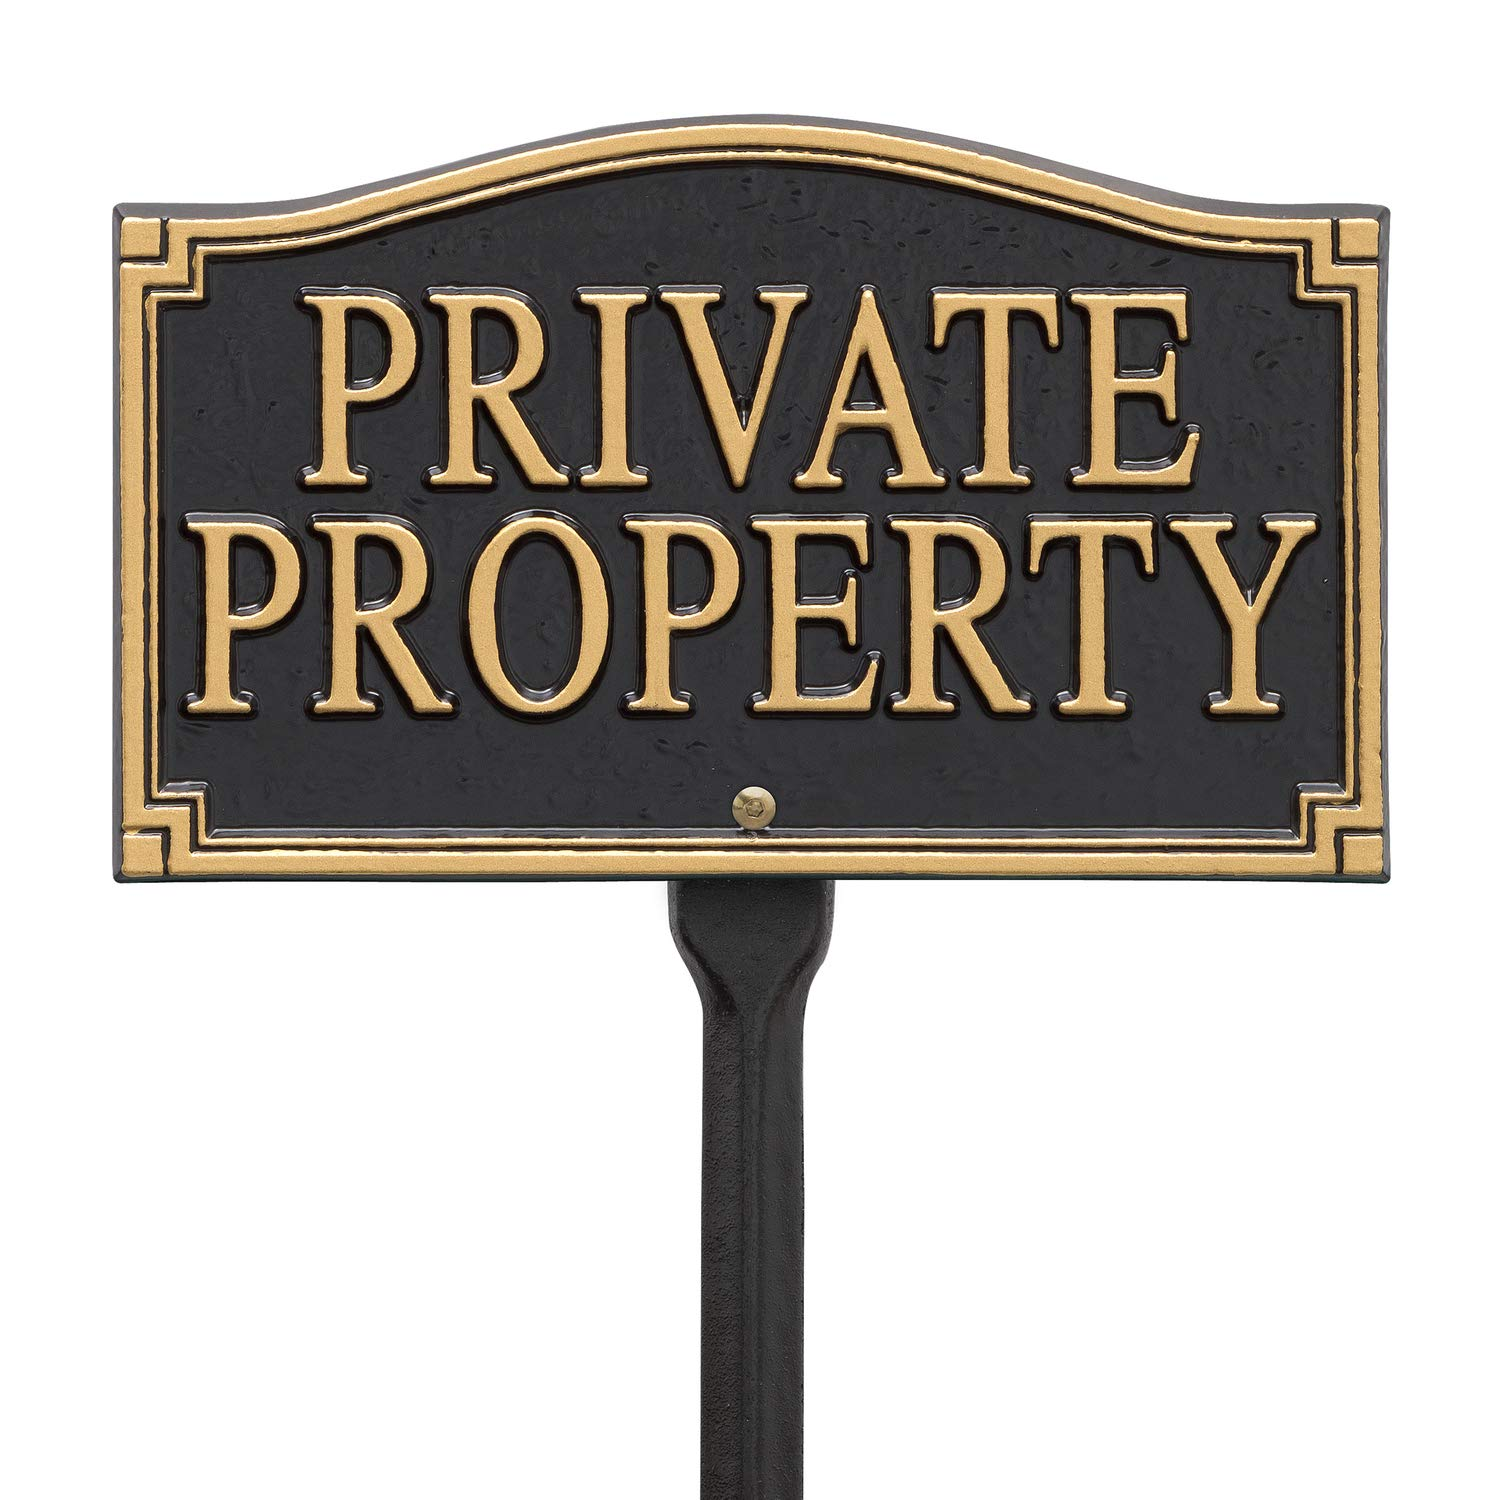 Whitehall Products Private Property Wall/Lawn Statement Plaque, Black/Gold